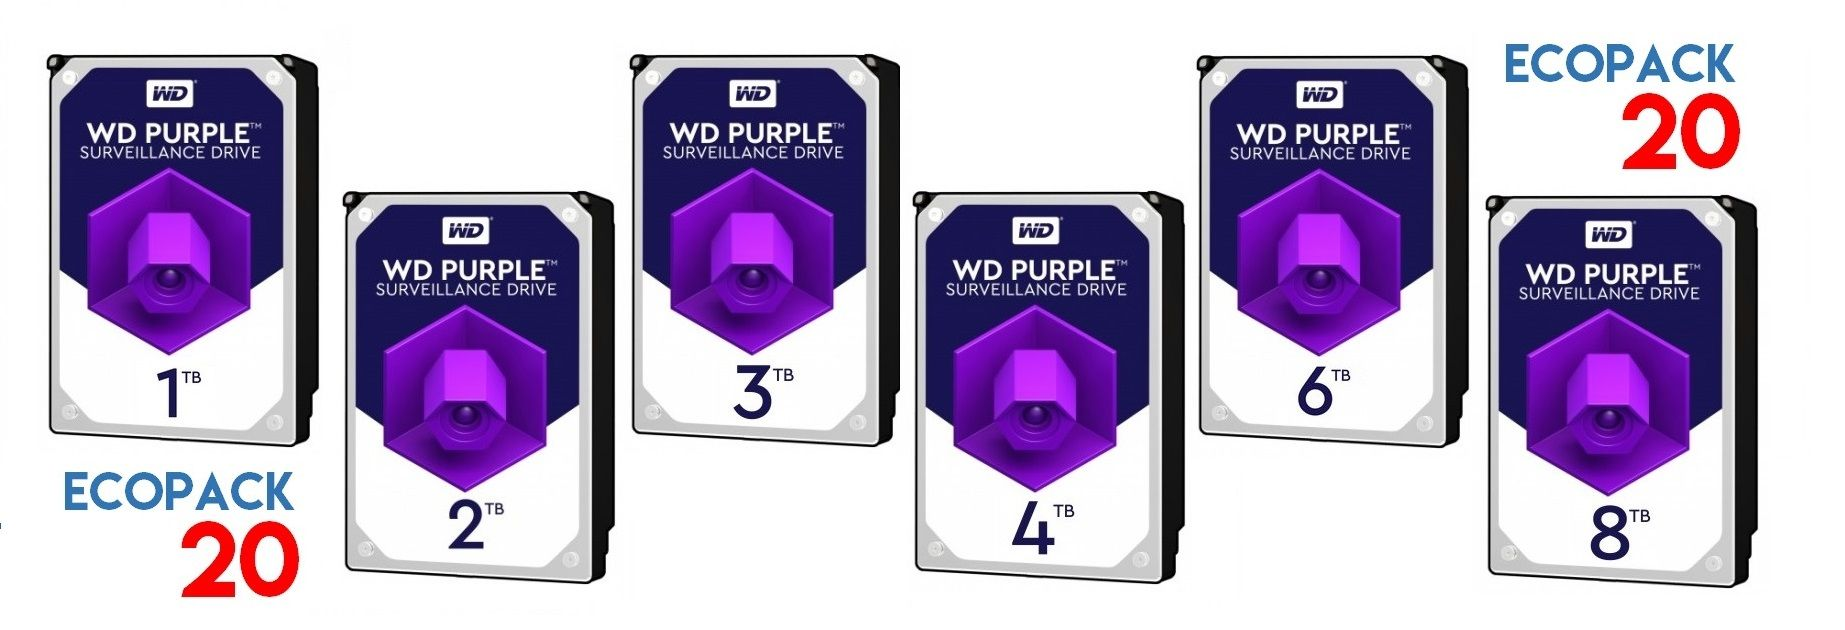 WD ECO PACK